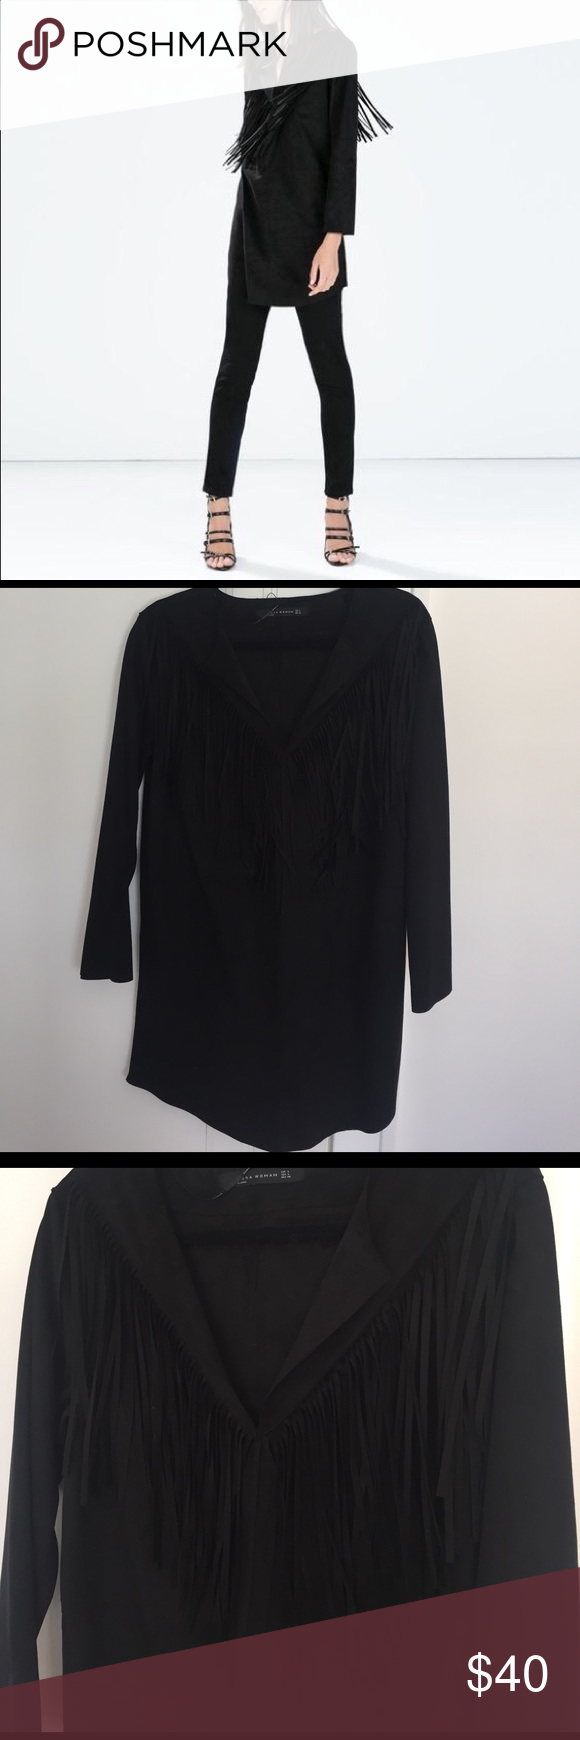 Black suede fringe dress/long shirt New with tags - 100% polyester Zara Dresses Mini